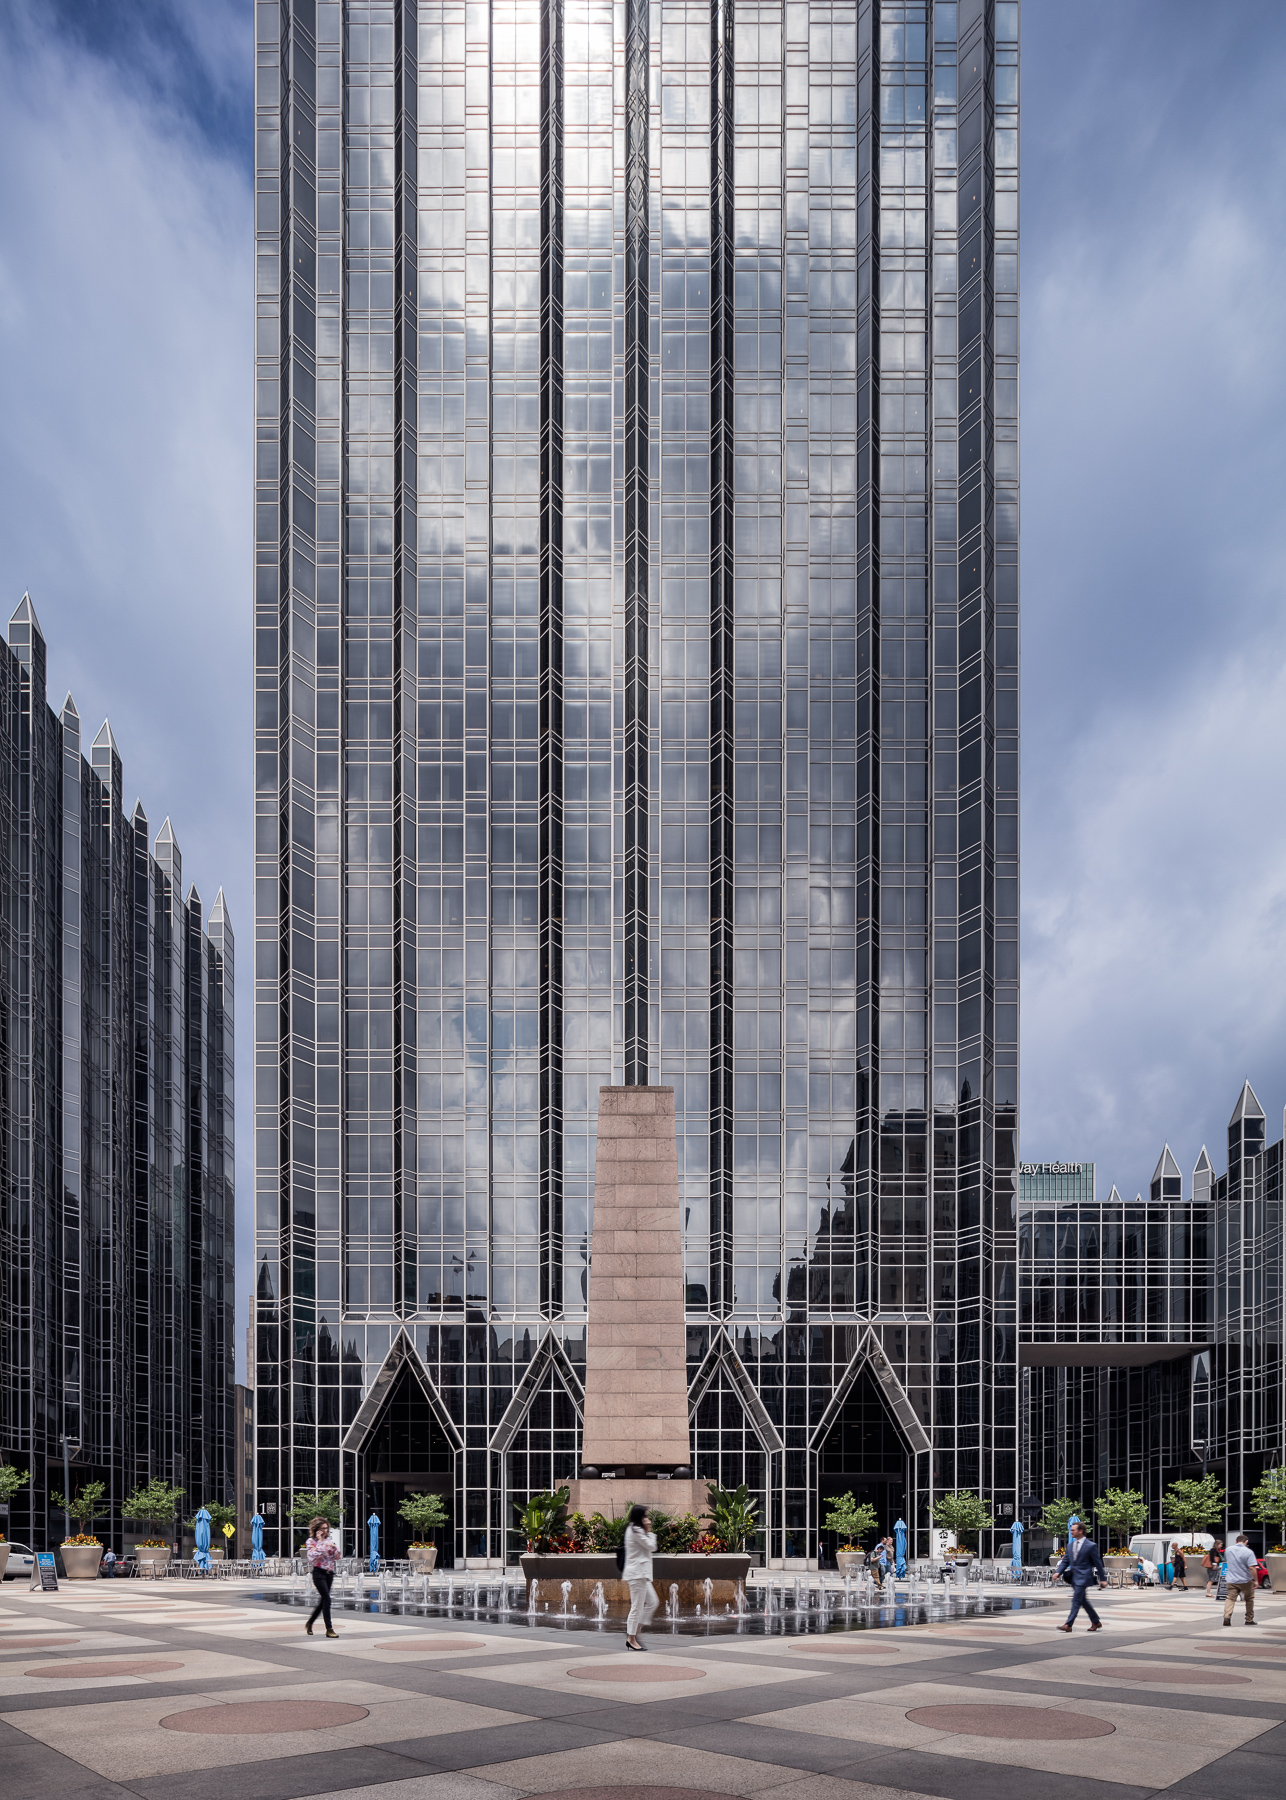 PPG Place Tower and Fountains